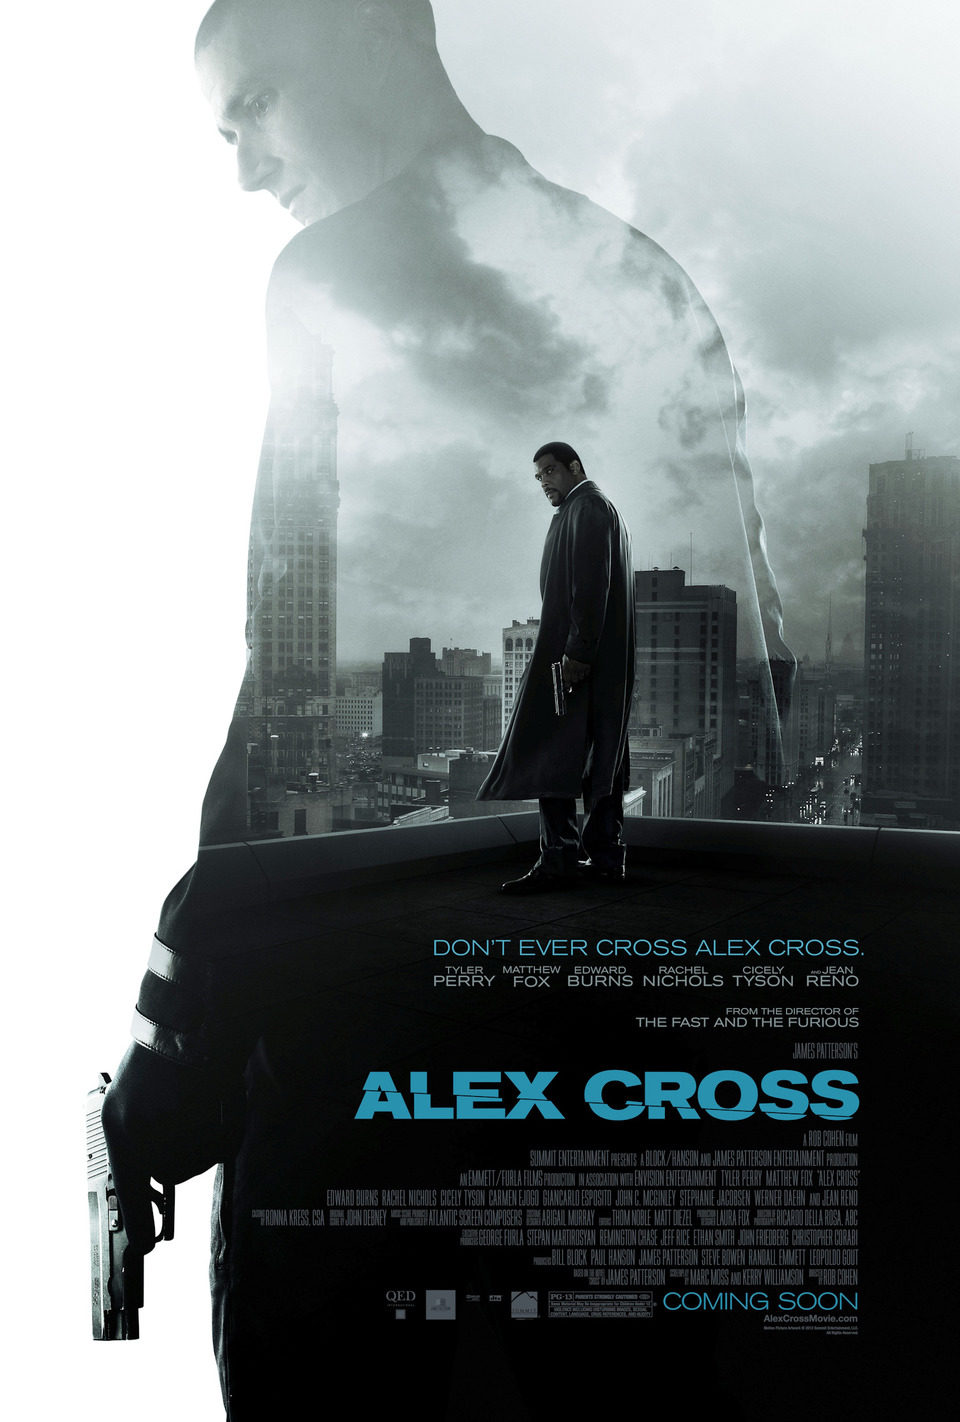 EEUU poster for Alex Cross